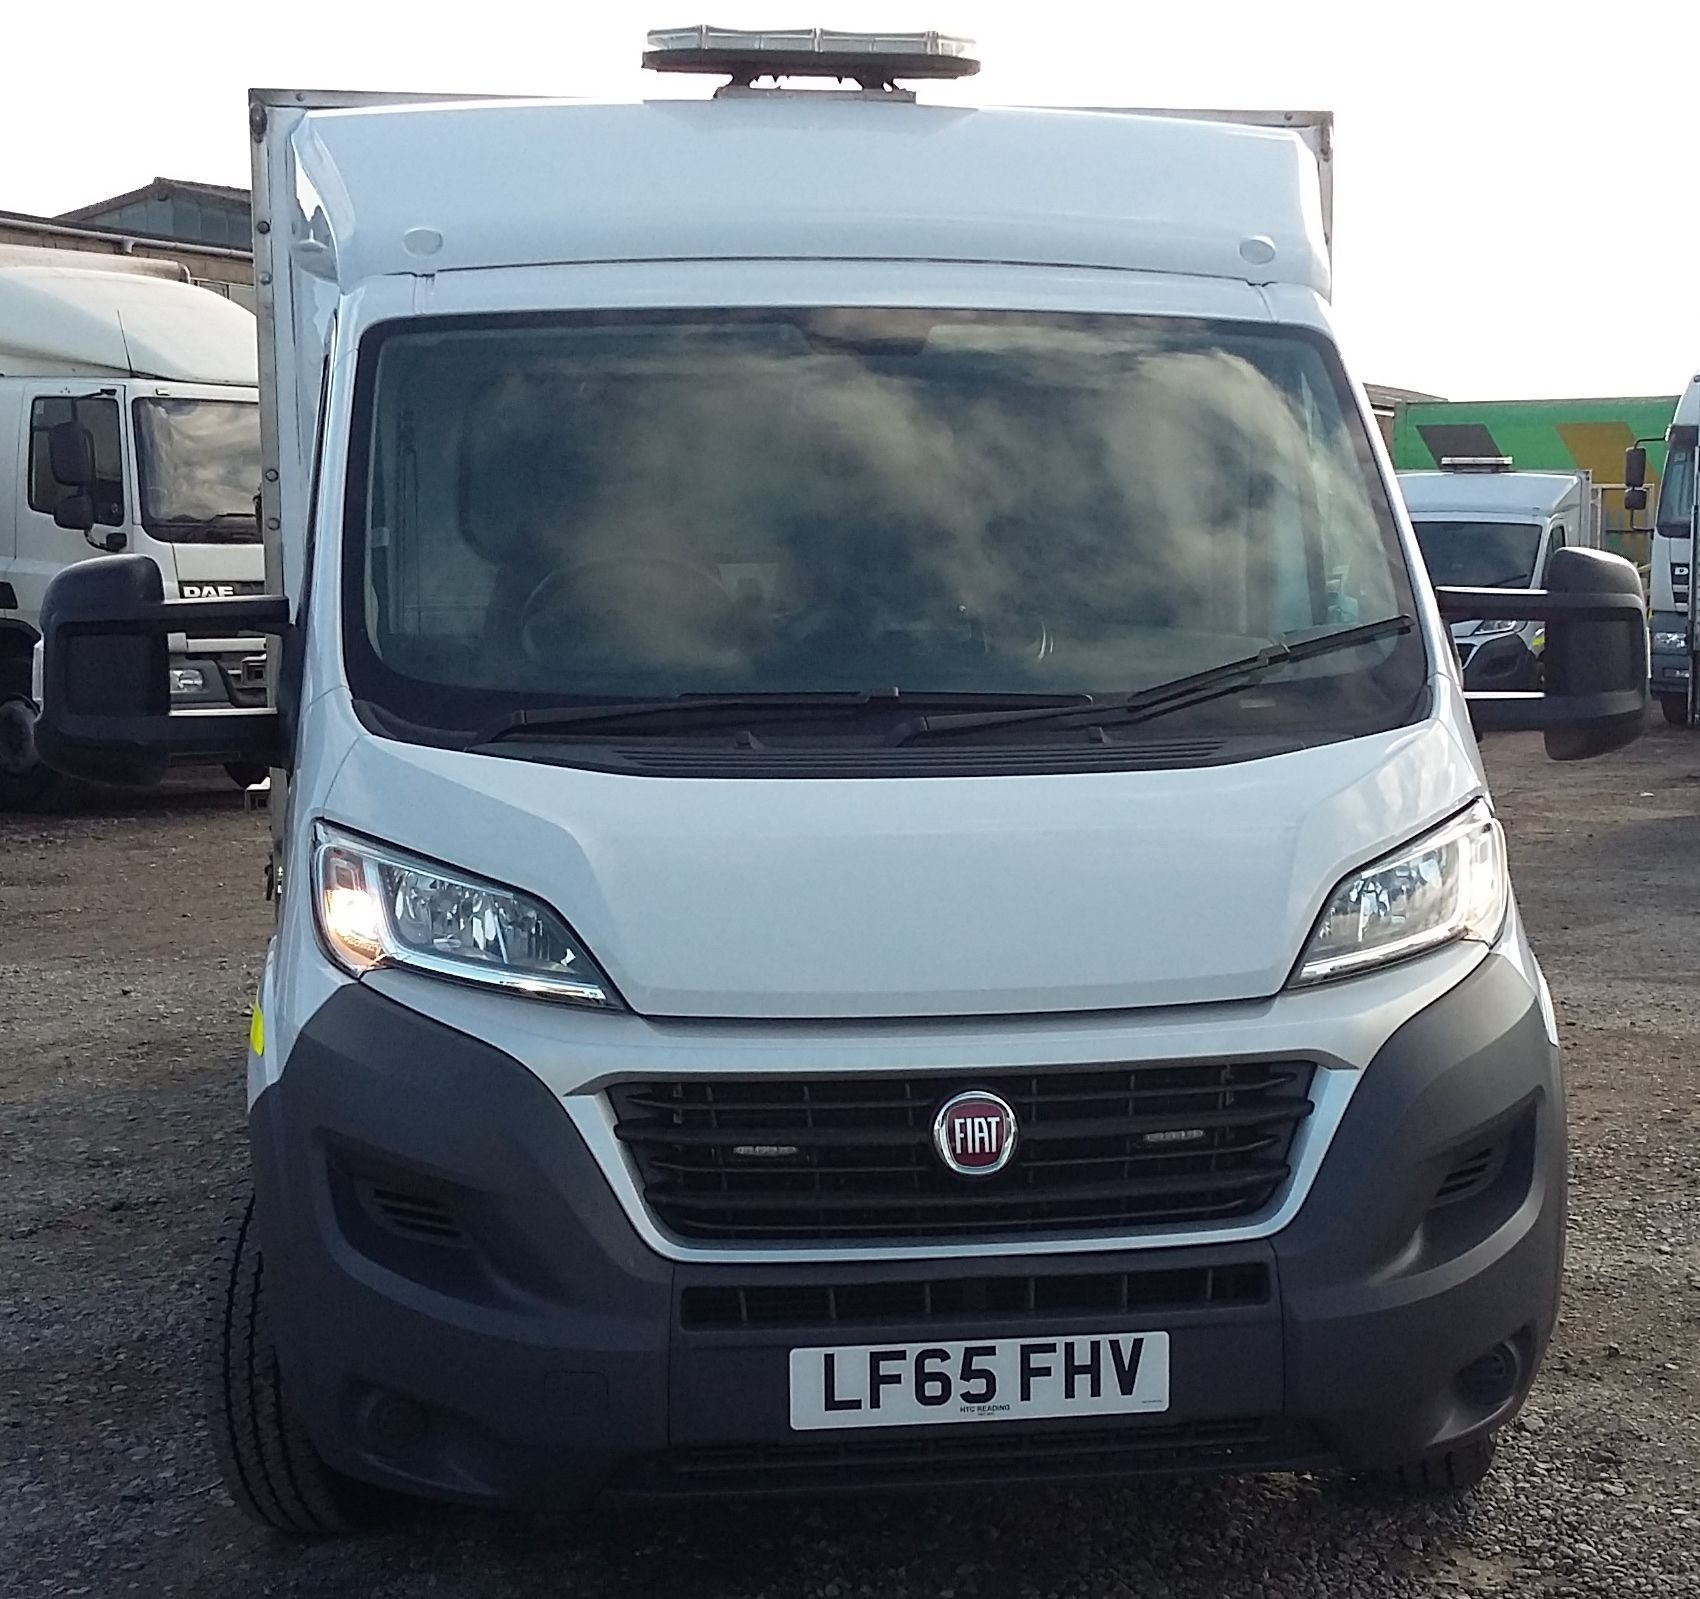 Fiat Ducato 2.3 JTD Multijet II 35 MH1 Chassis Cab 2dr (2015)